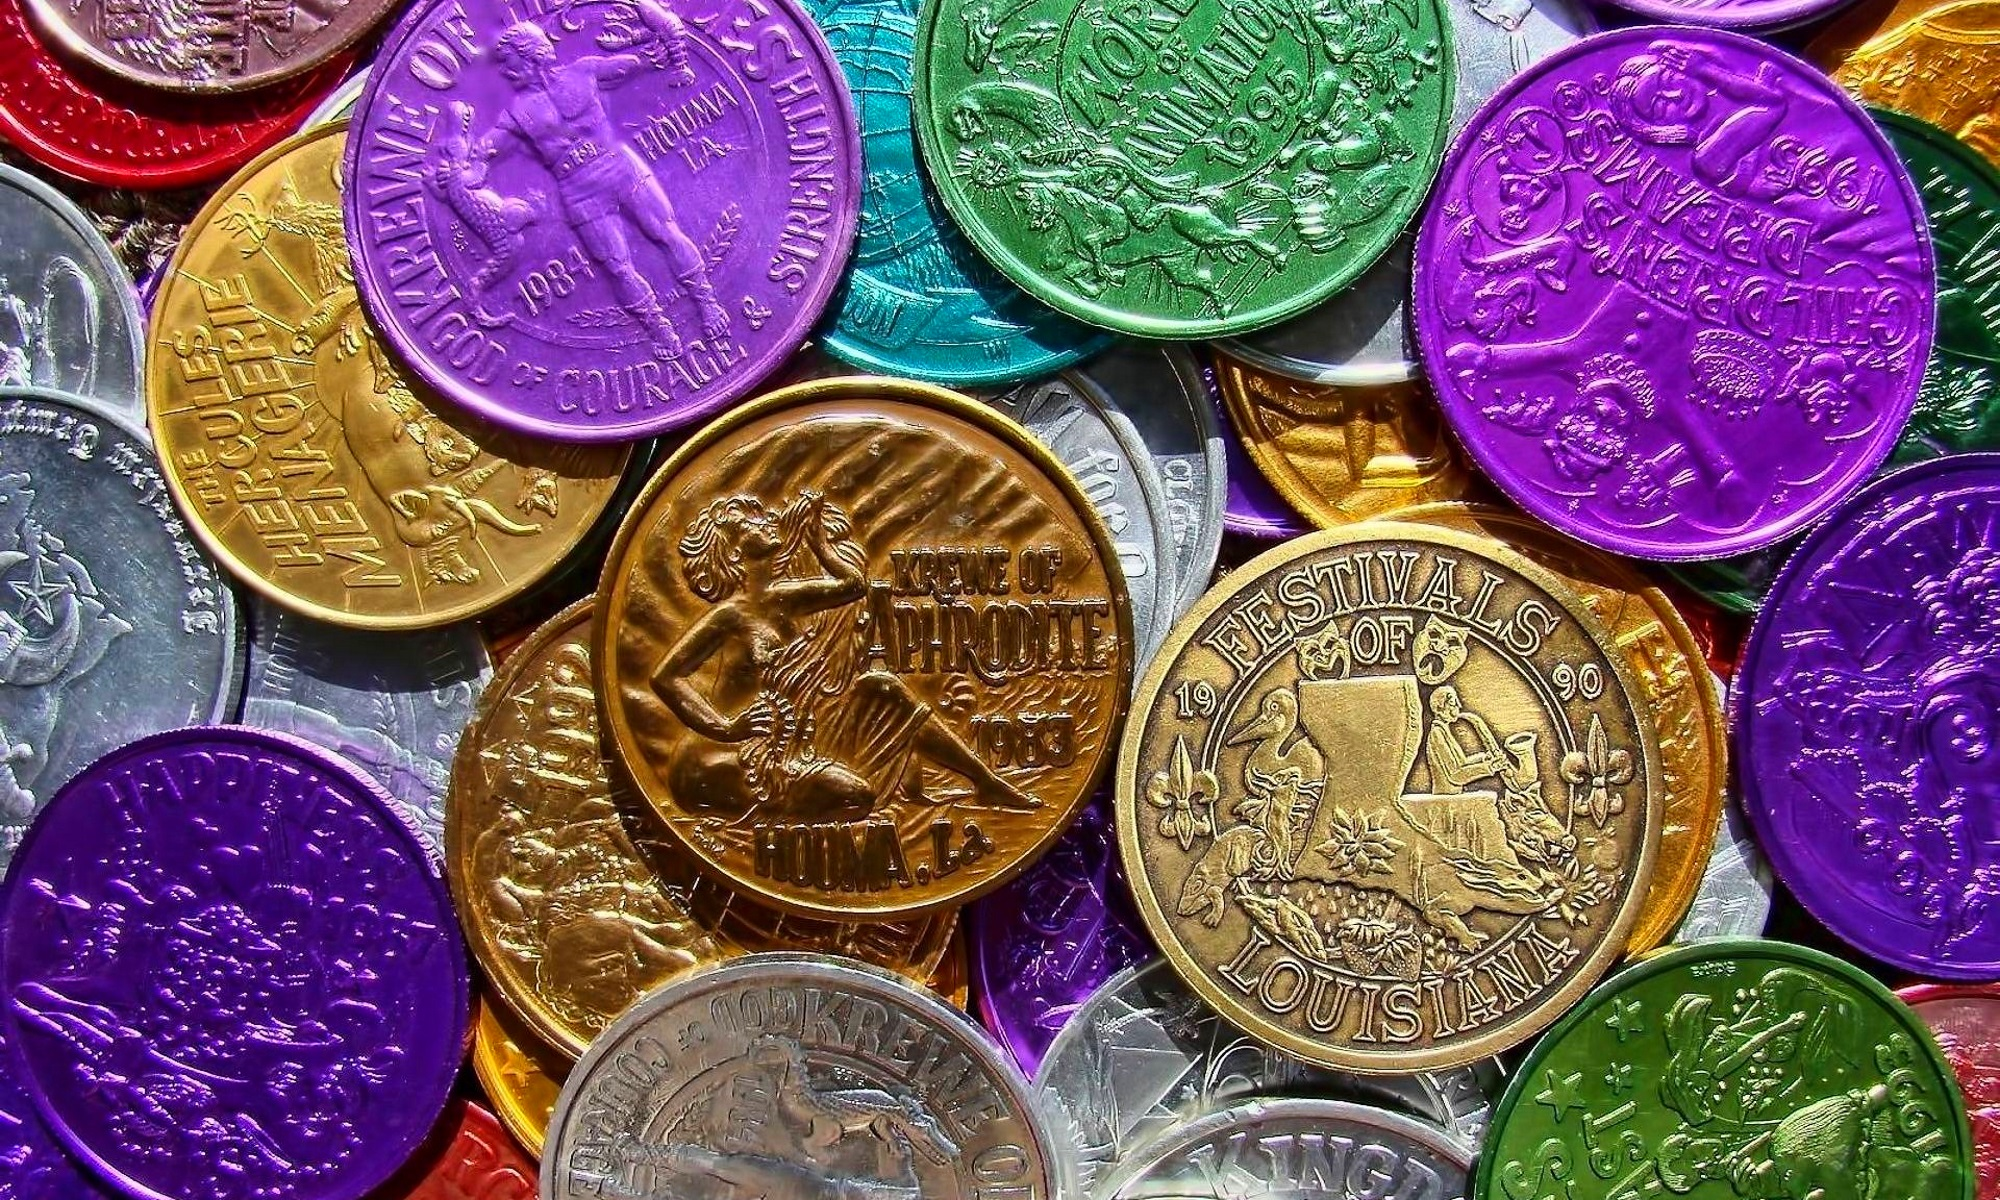 Picture of Multicolored Coins